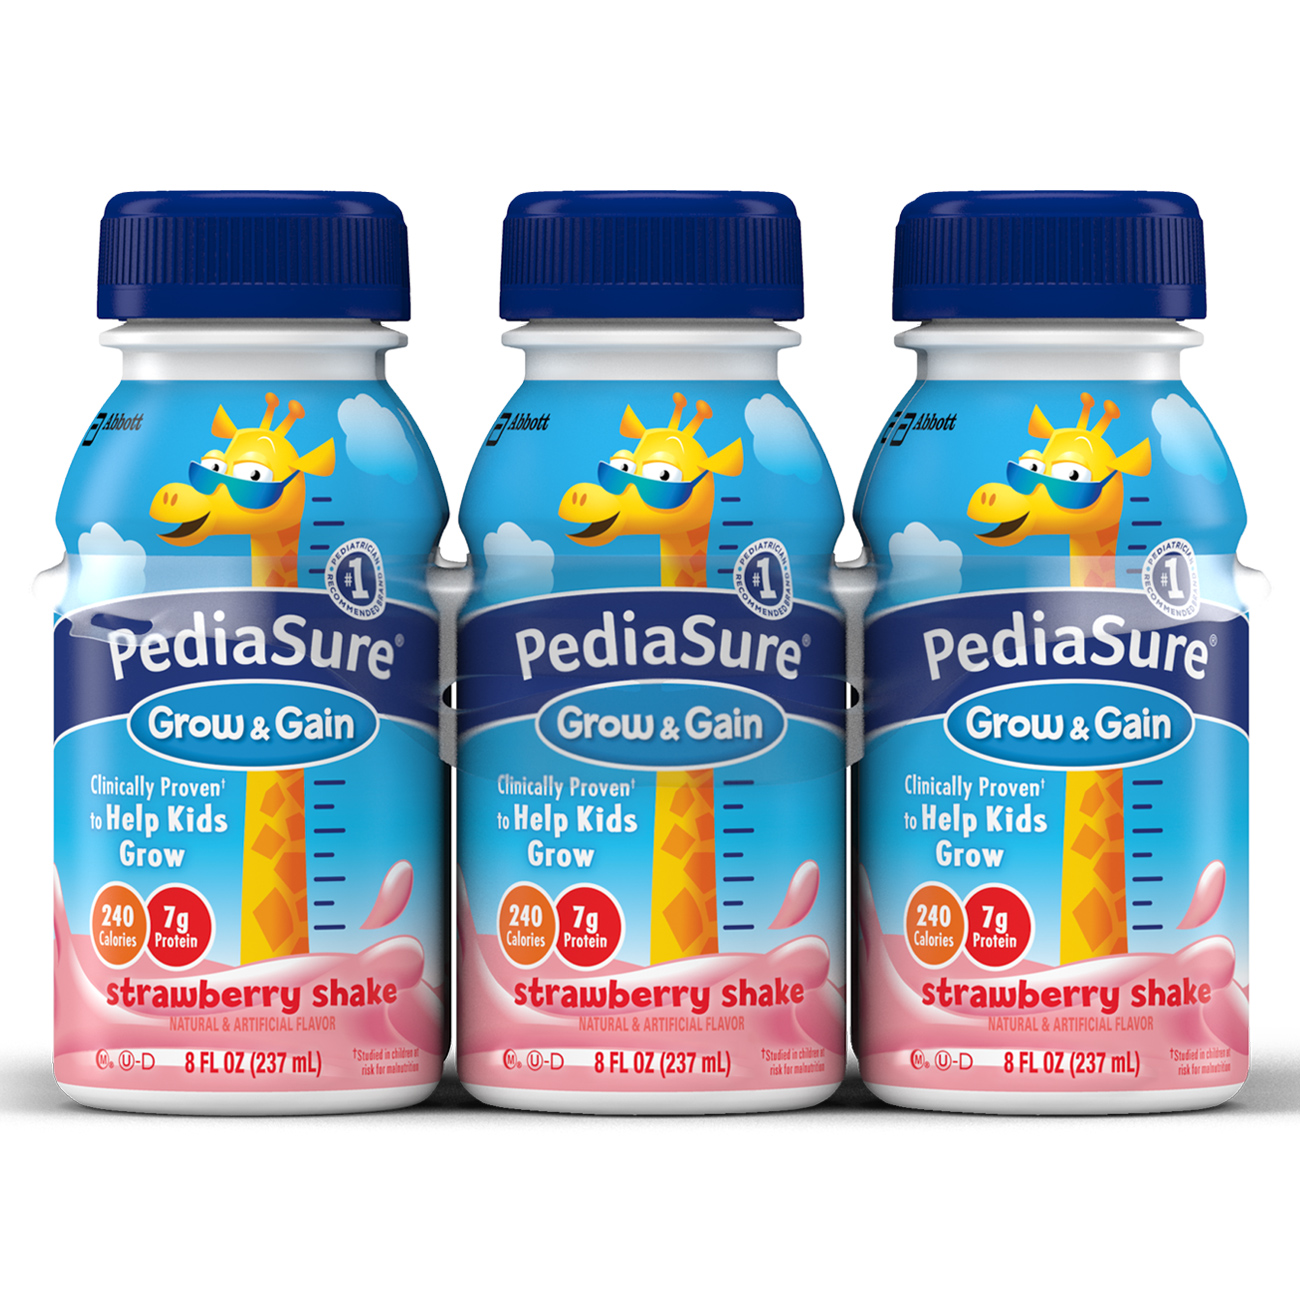 PediaSure Nutrition Drink, Strawberry Shake, 8 fl oz (Pack of 6)